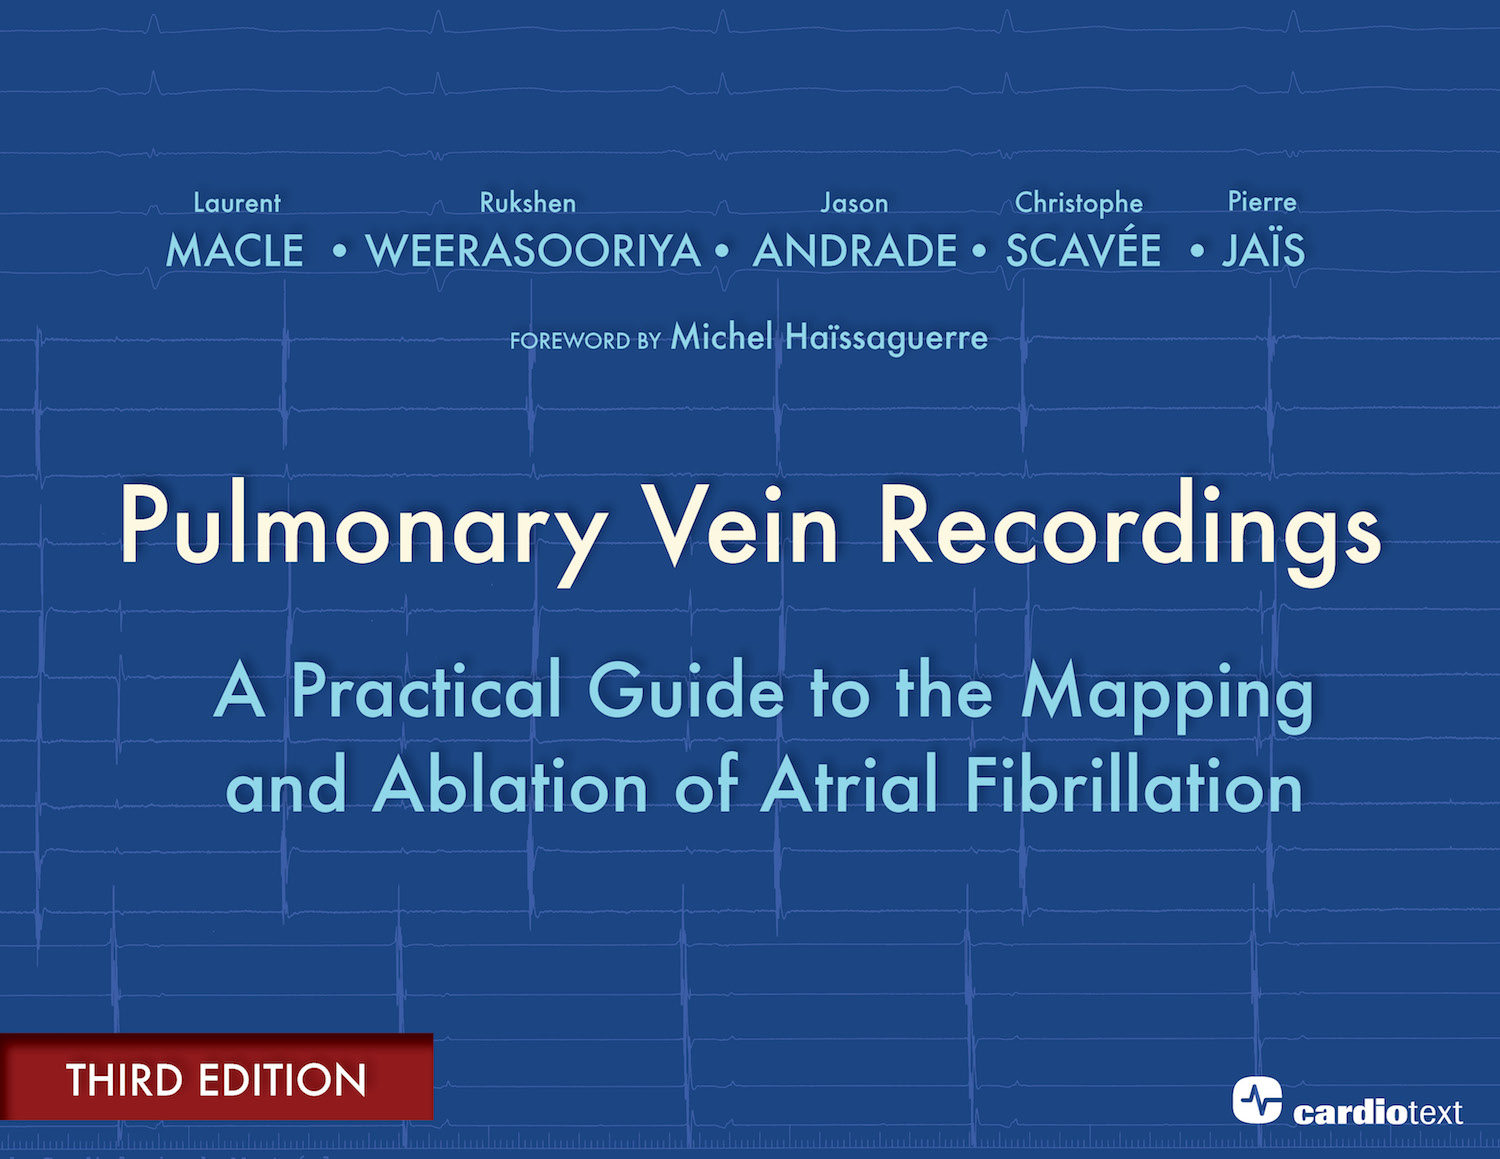 Pulmonary Vein Recordings: A Practical Guide to the Mapping and Ablation of Atrial Fibrillation - 3rd Edition